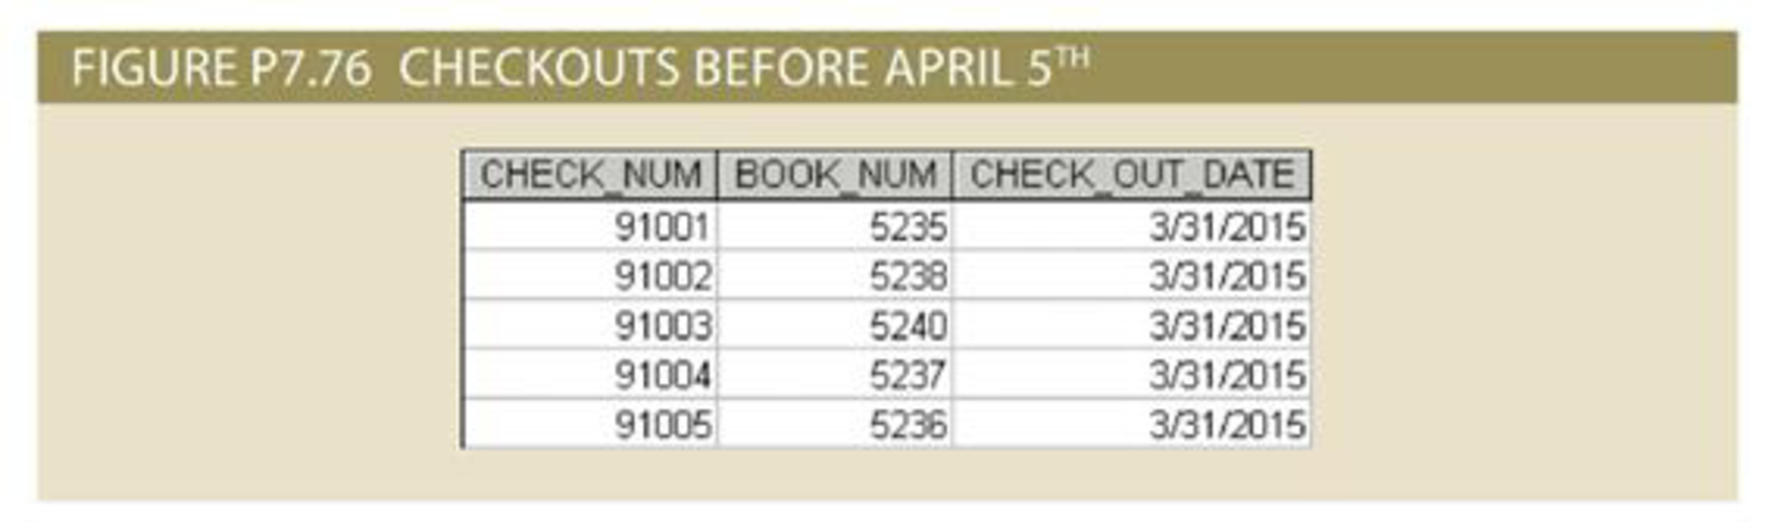 Chapter 7, Problem 76P, Write a query to display the checkout number, book number, and checkout date of all books checked